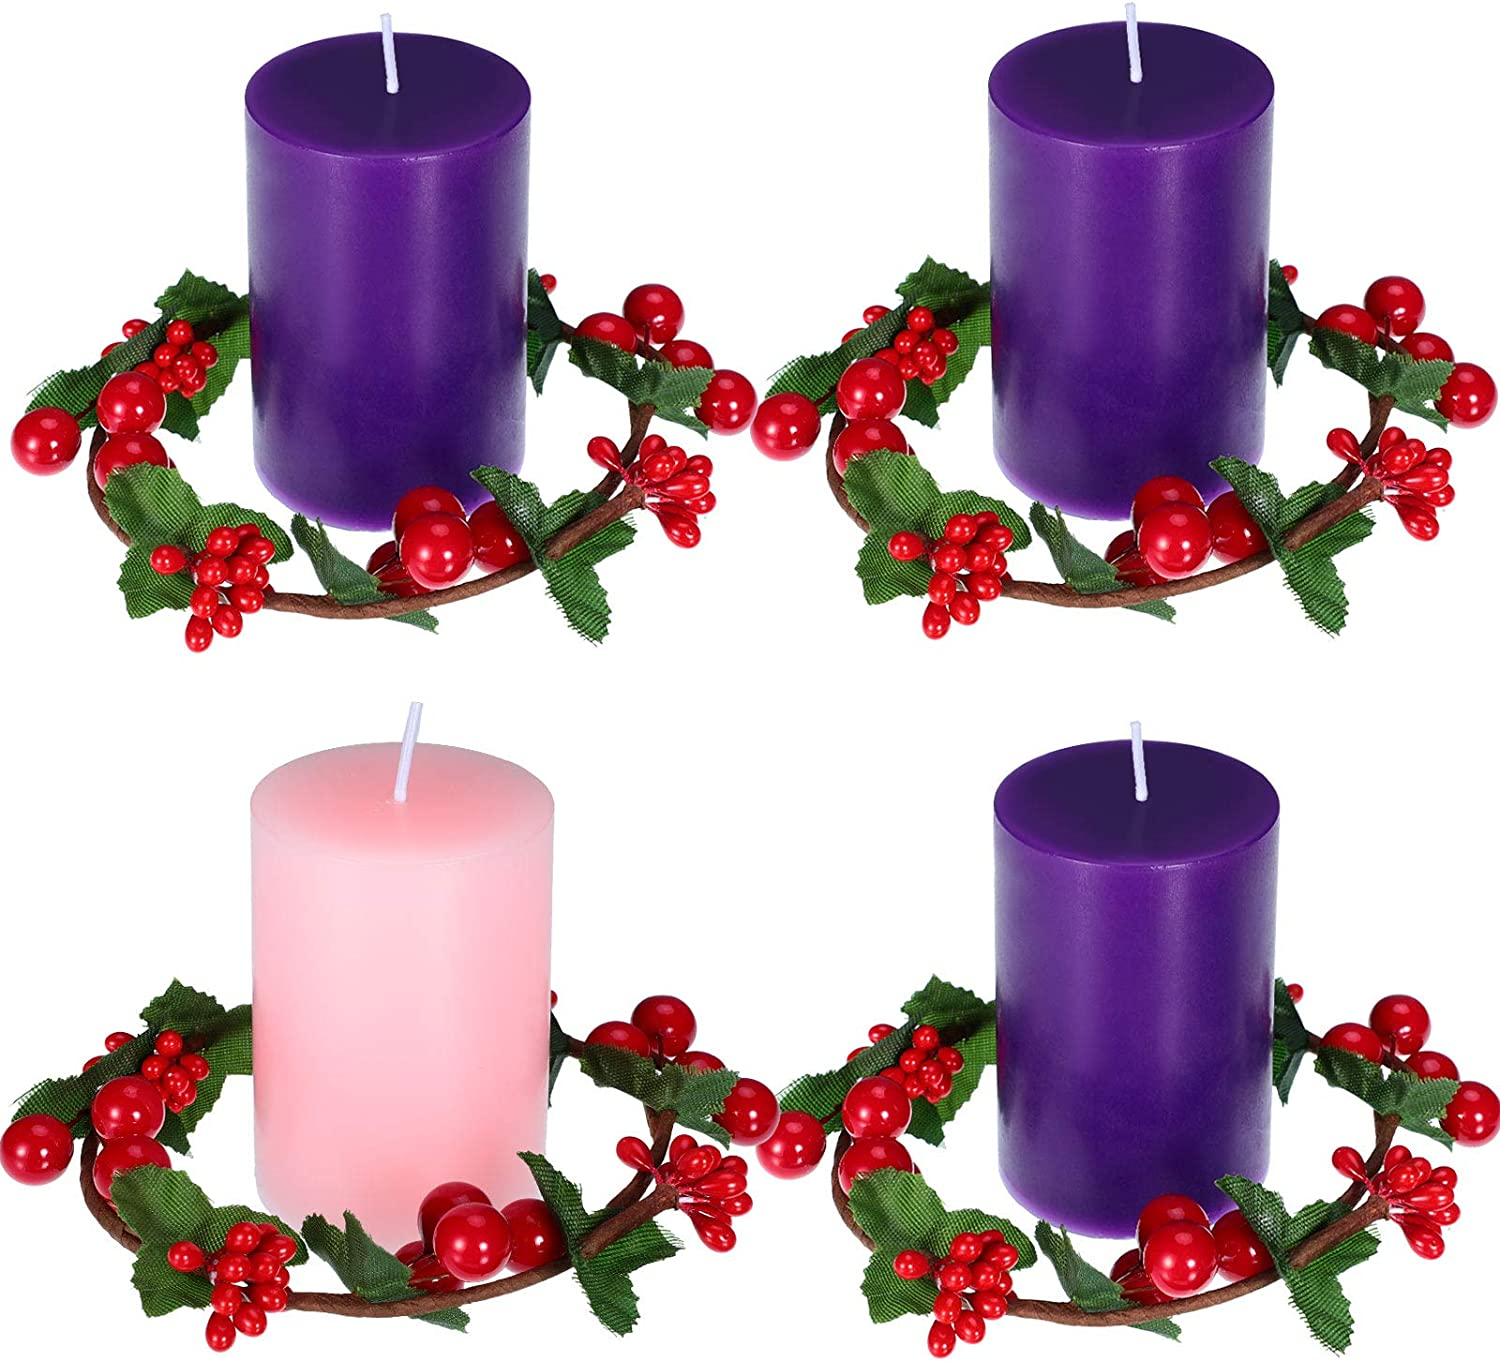 Nuanchu 4 Pieces Christmas Advent Pillar Candles Dripless Scented Round Votive Pillar Candles, 4 Pieces Berry Candles Holders Wreath Christmas Red Candle Berry Rings for Christmas Home, Wedding Decor